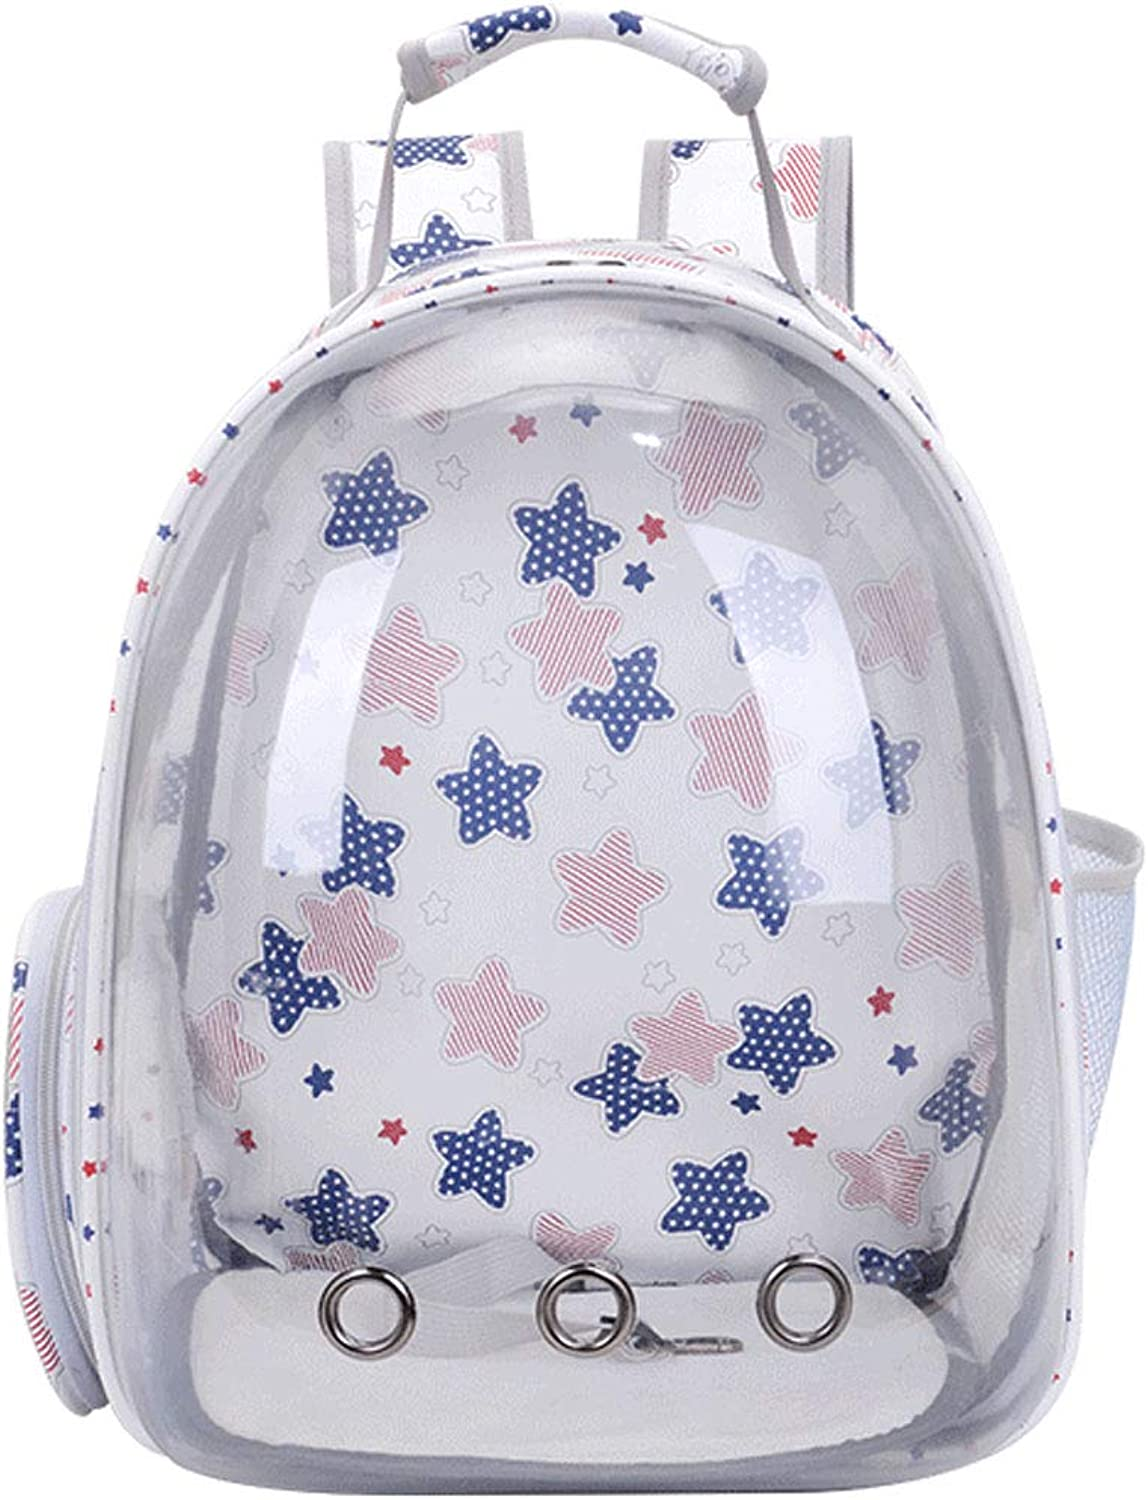 Obzk Pet Space Pack Portable Comfortable Breathable Cat Backpack Dog Backpack Suitable For Small Cats And Dogs,Big star,M